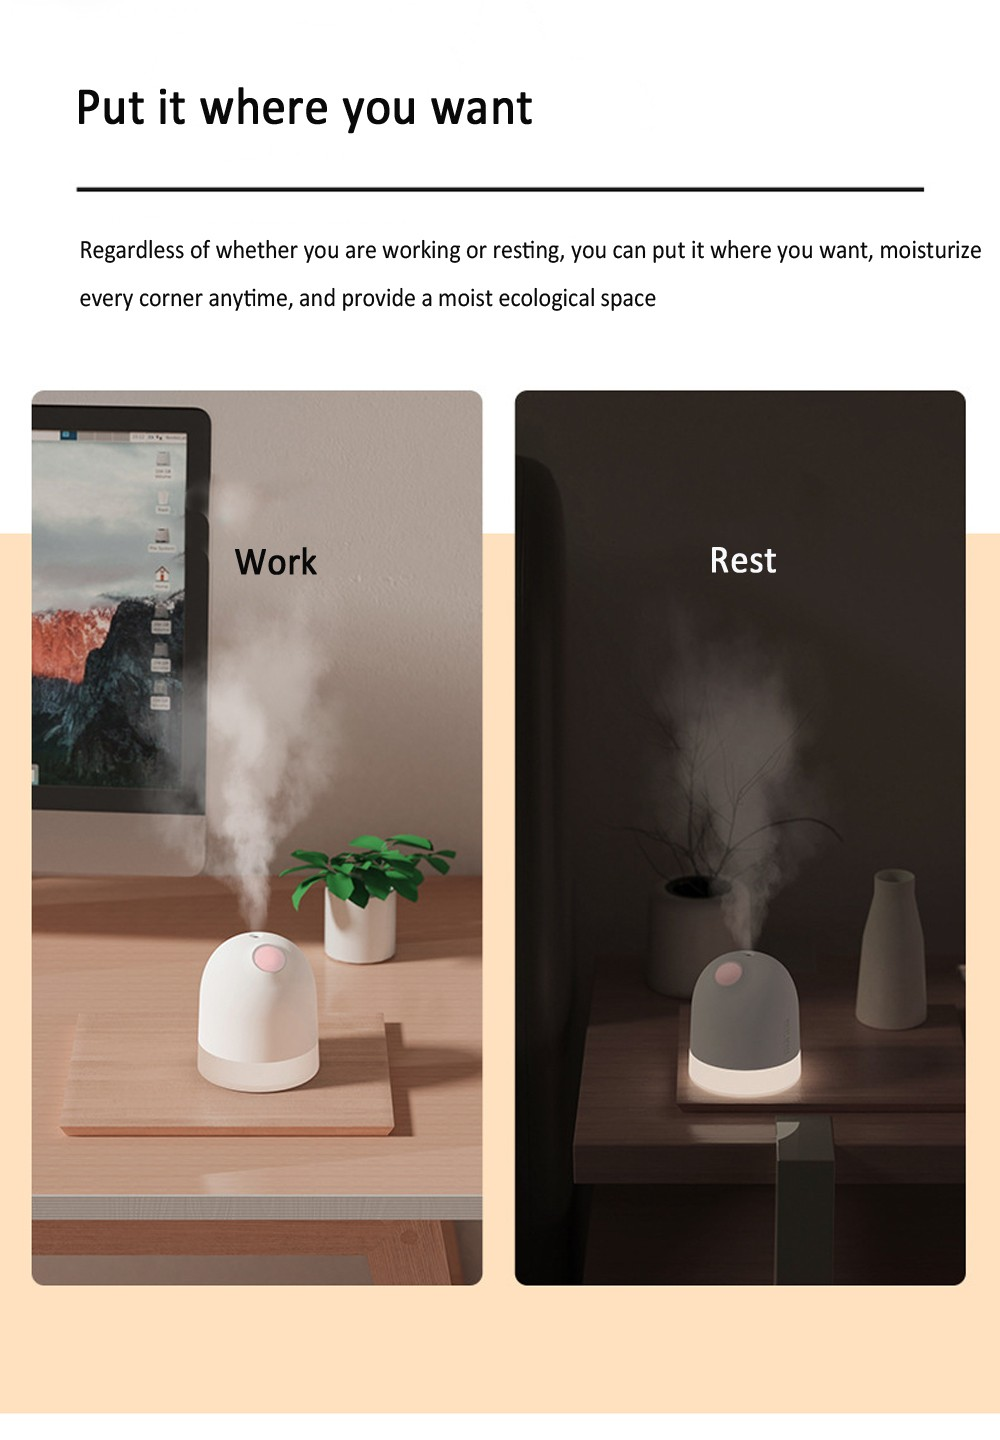 Y20 Mole USB Humidifier Mini Small Large Spray Desktop Car Home Humidifier 360ml - White